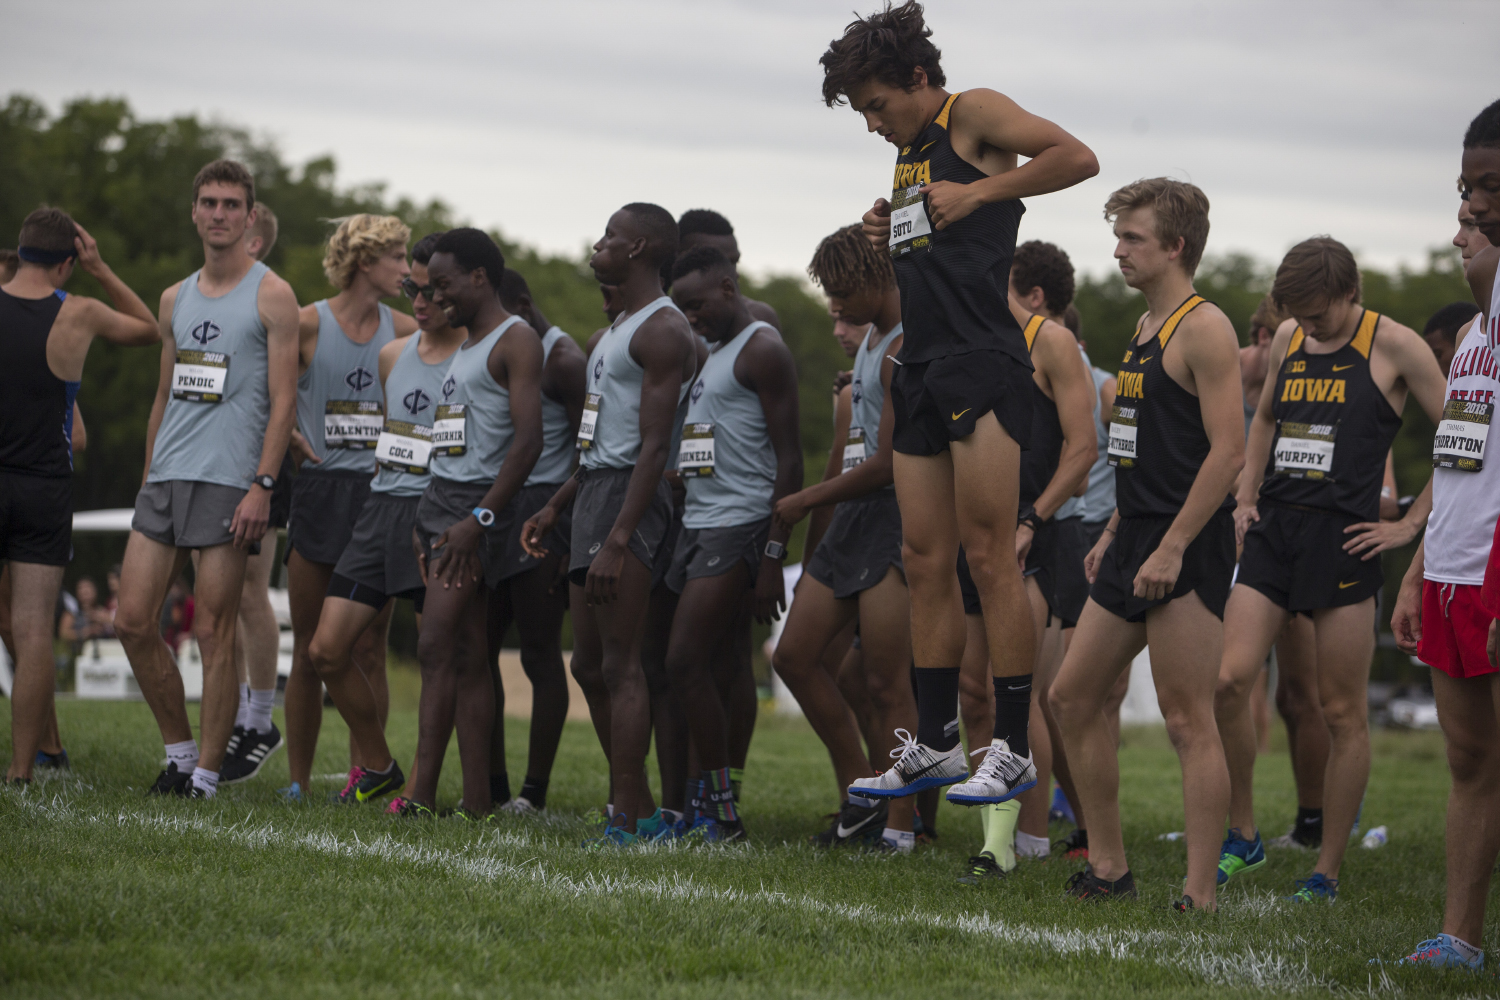 Senior Daniel Soto warms up before the Hawkeye Invitational at Ashton Cross Country course on Friday, Aug. 31, 2018.